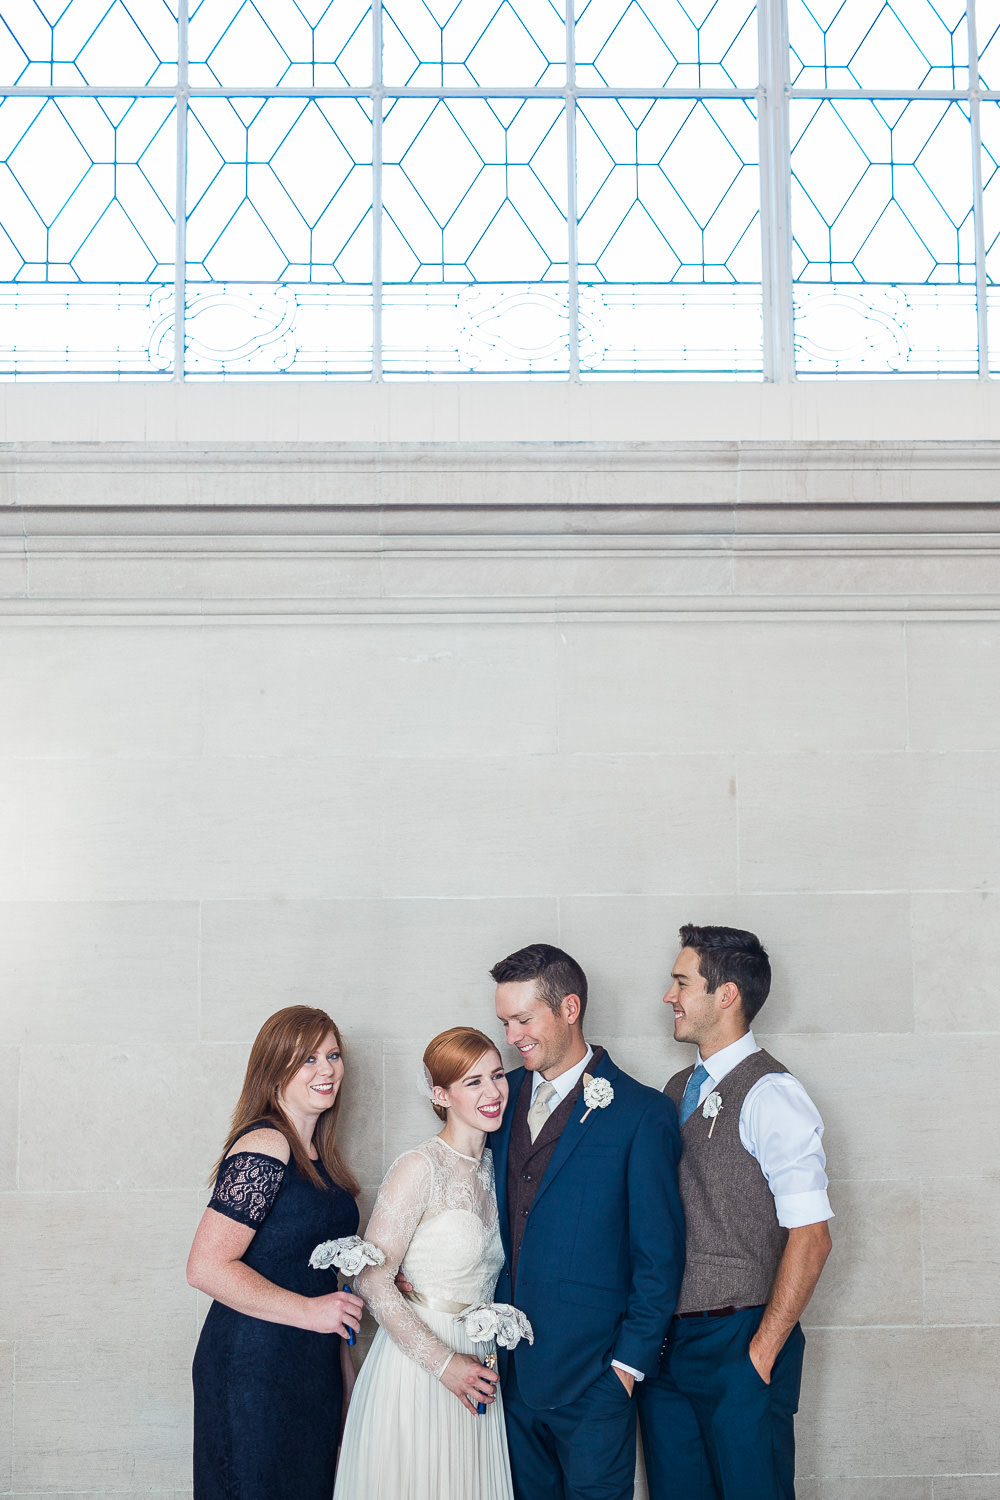 Intimate elopement wedding party San Francisco CA